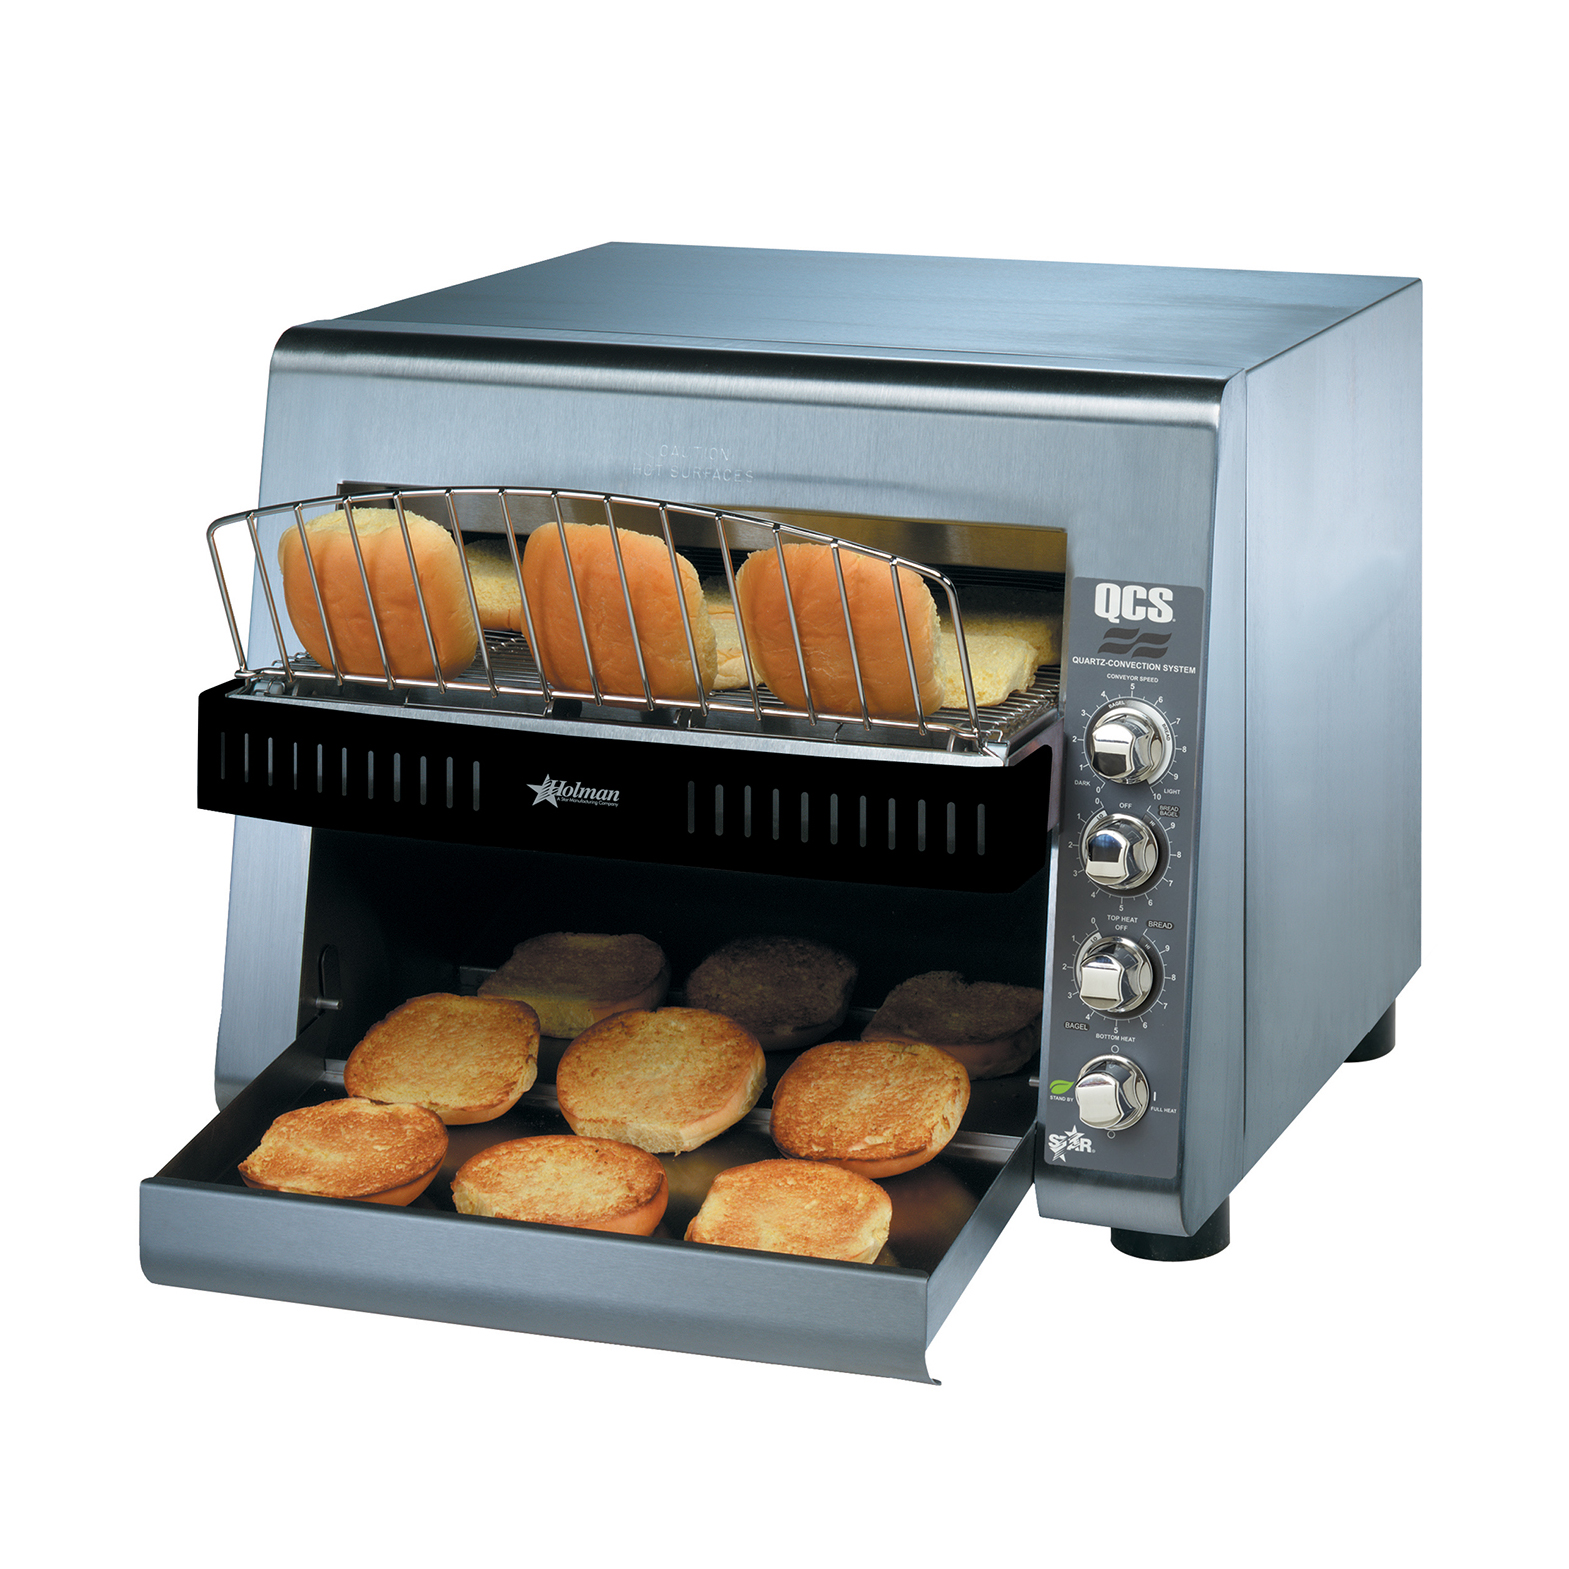 Star QCS3-950H toaster, conveyor type